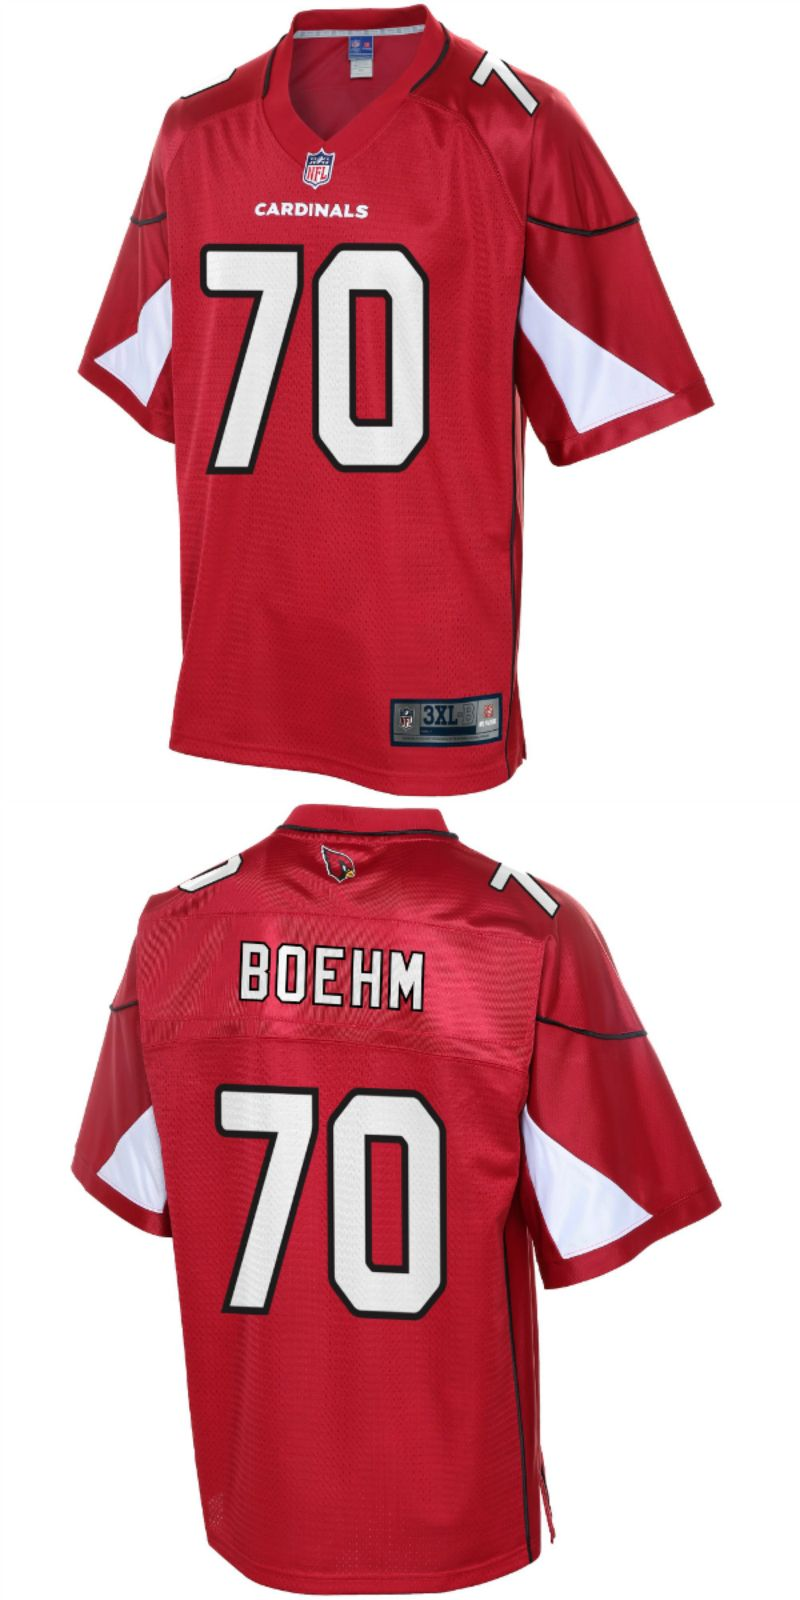 Evan Boehm Arizona Cardinals NFL Pro Line Player Jersey Cardinal. Up  free shipping